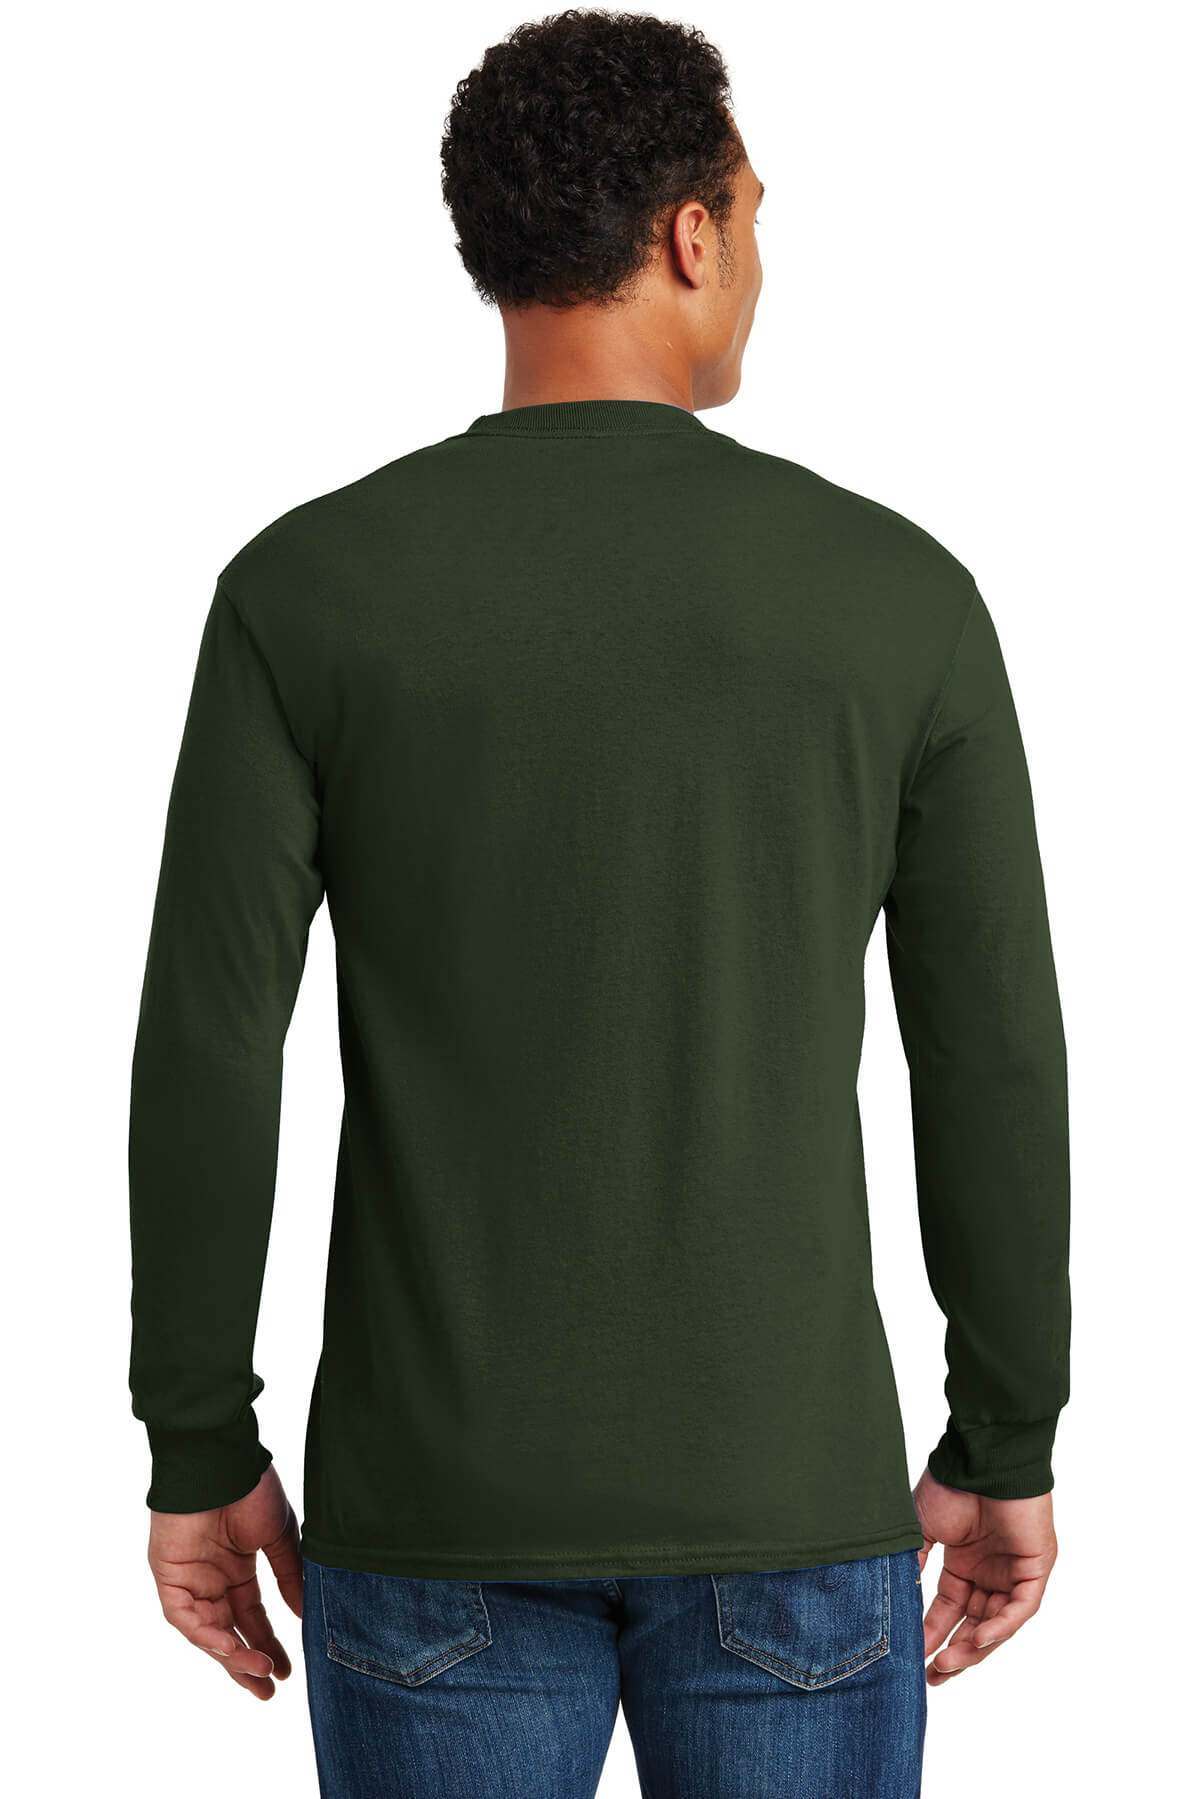 5400-forest-green-2